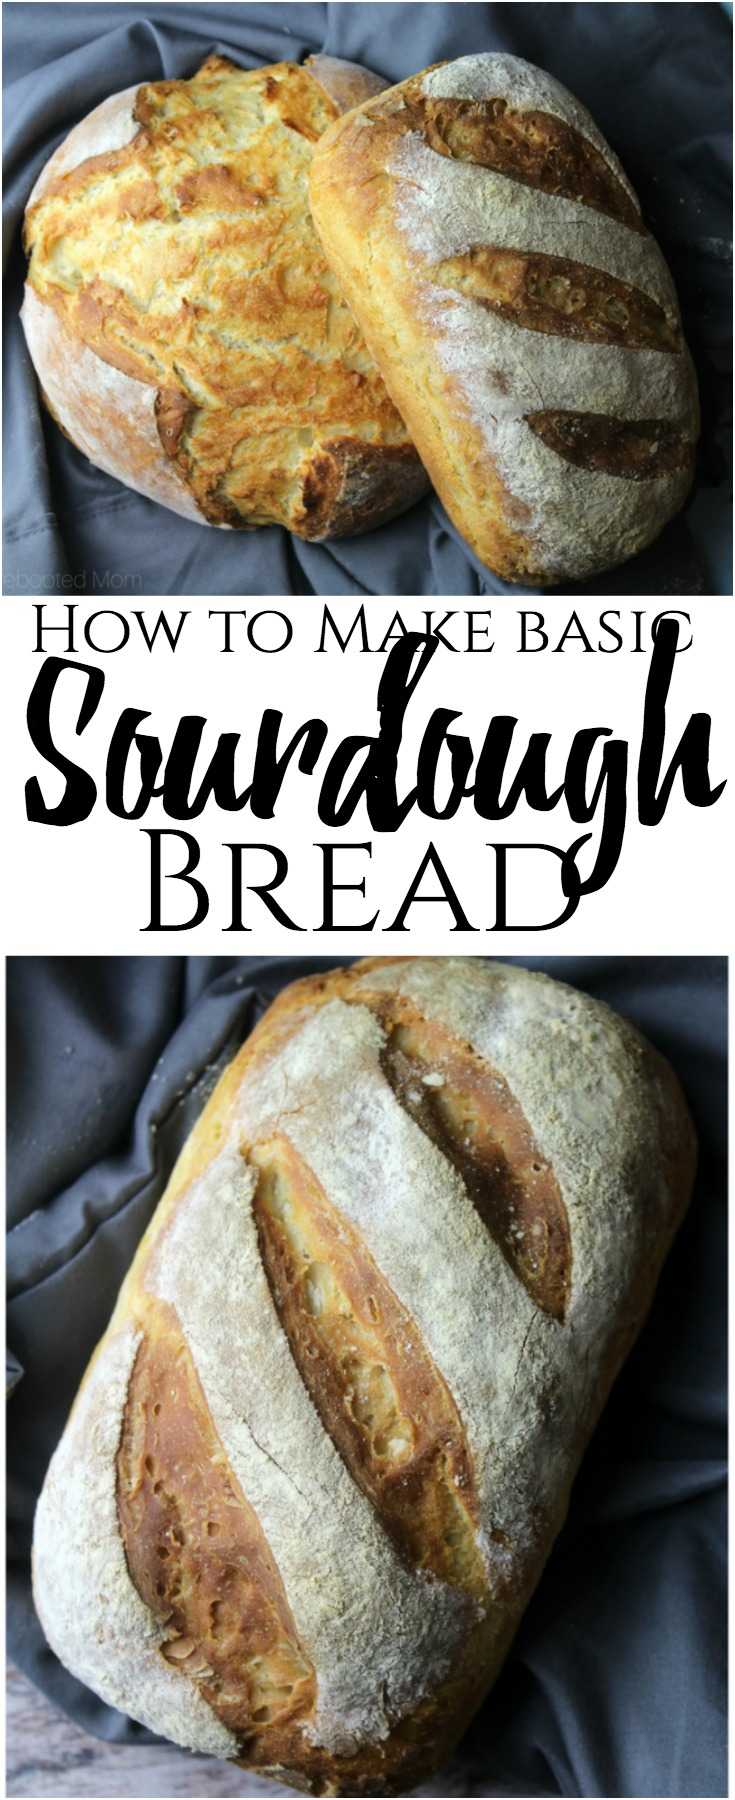 A simple sourdough recipe using a fresh, active starter that results in a wonderfully soft sourdough bread! #sourdough #bread #breadmaking